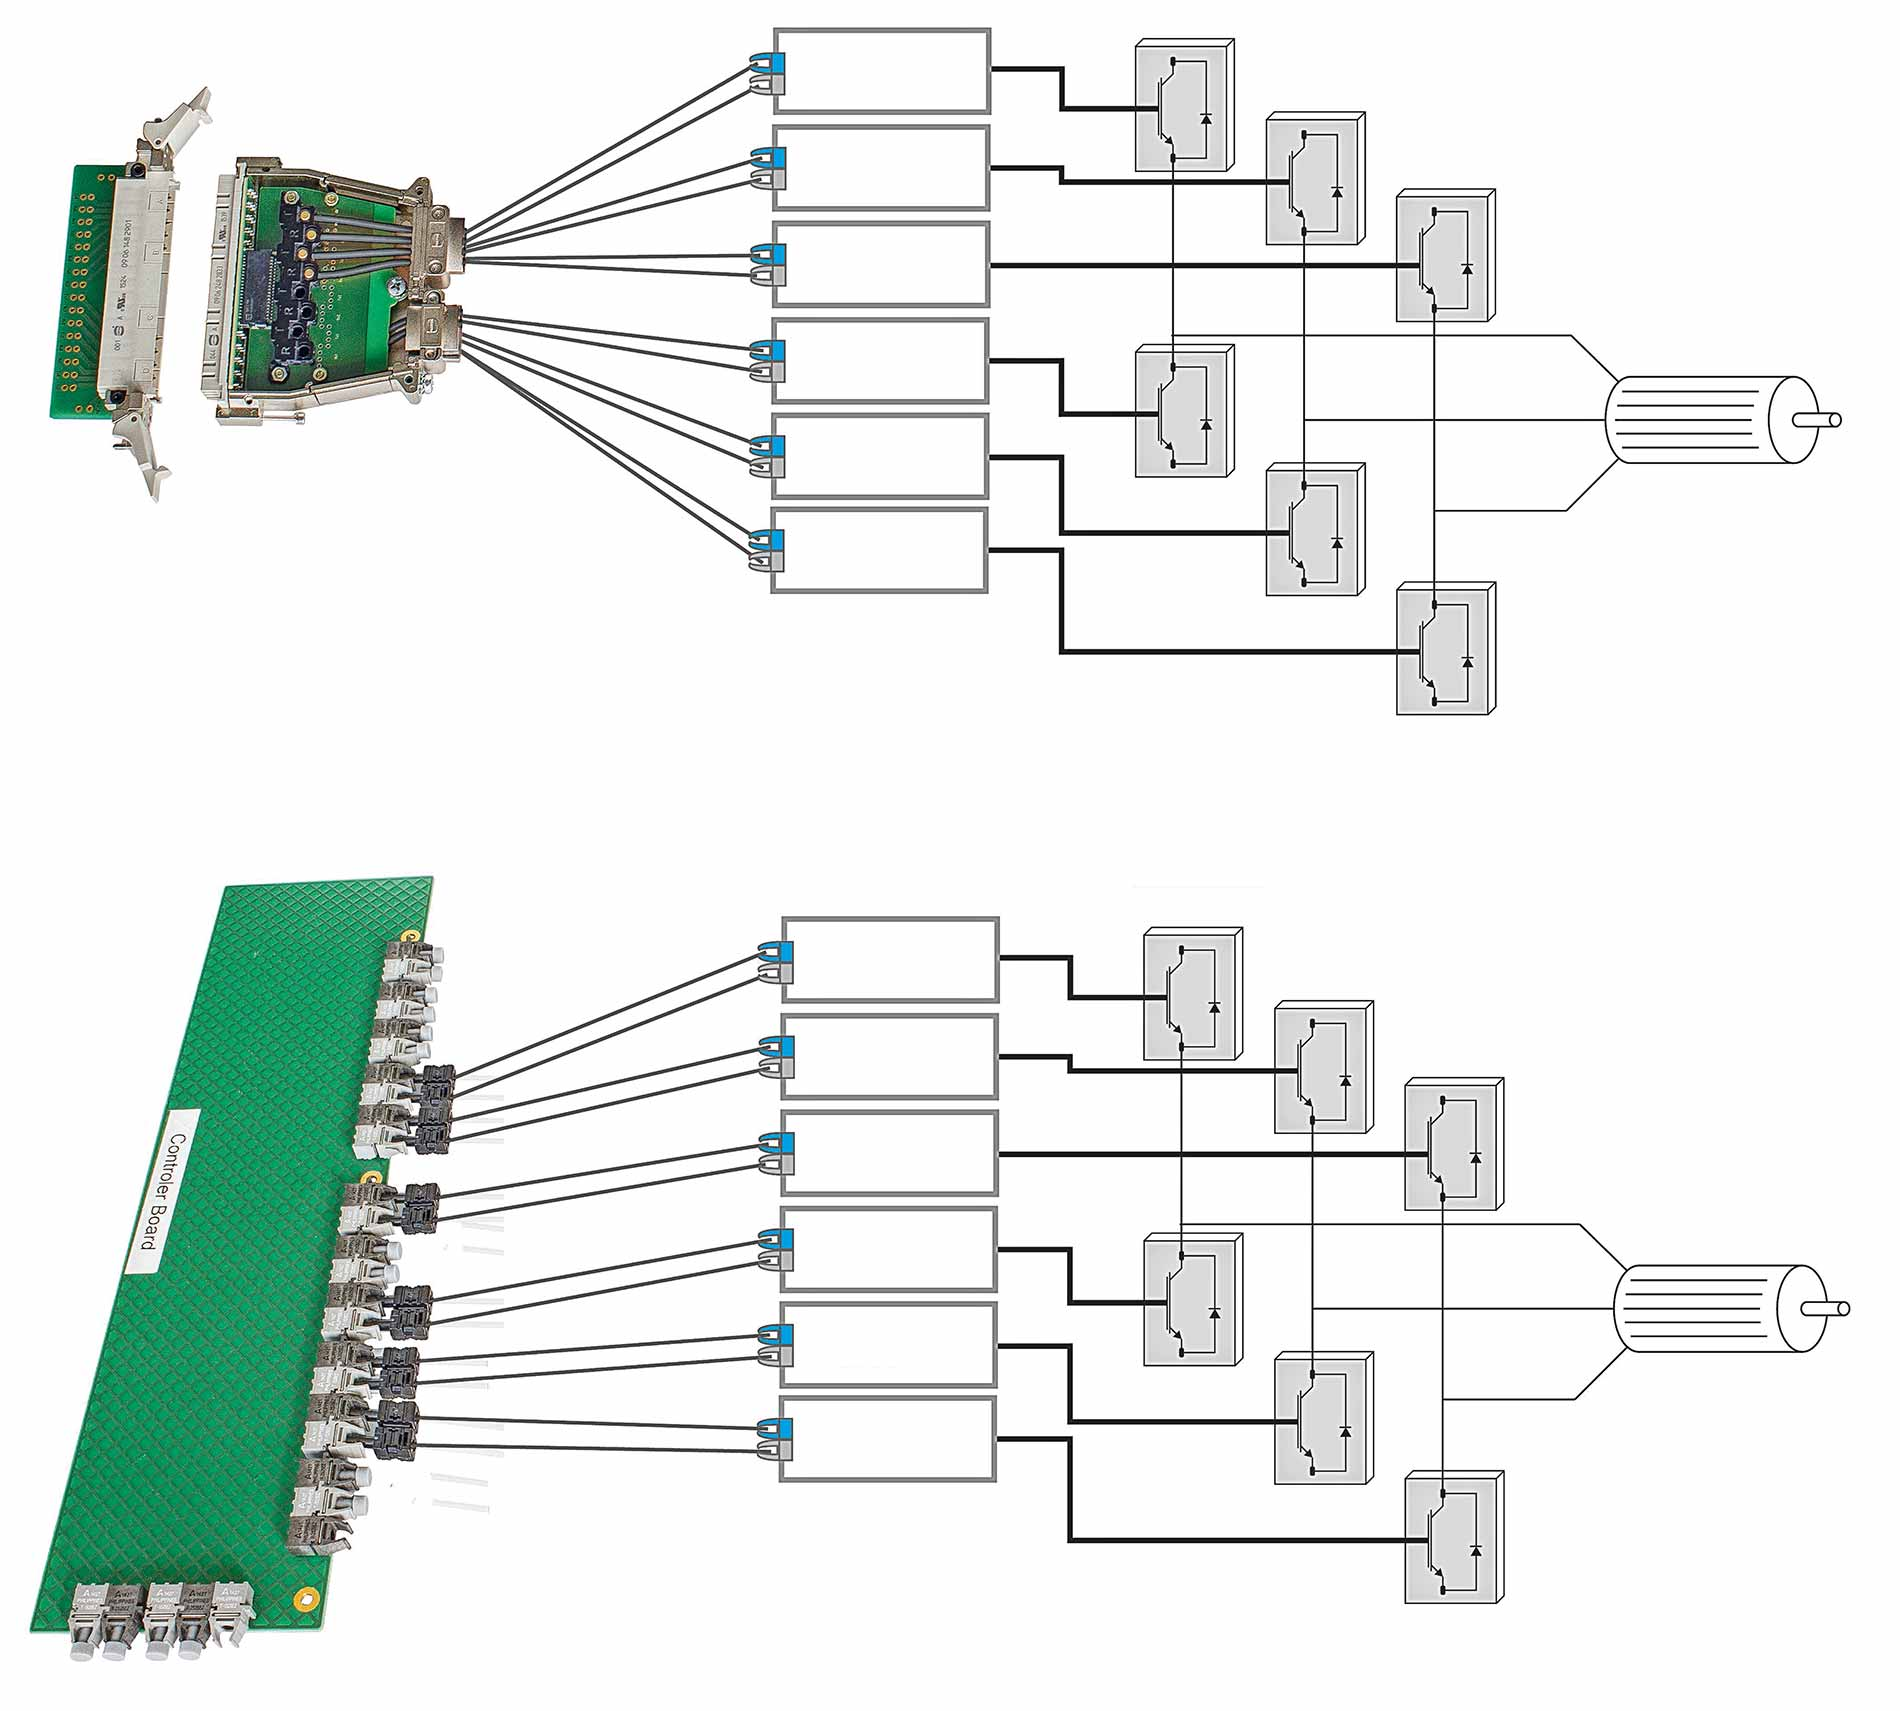 New and existing IGBT controls